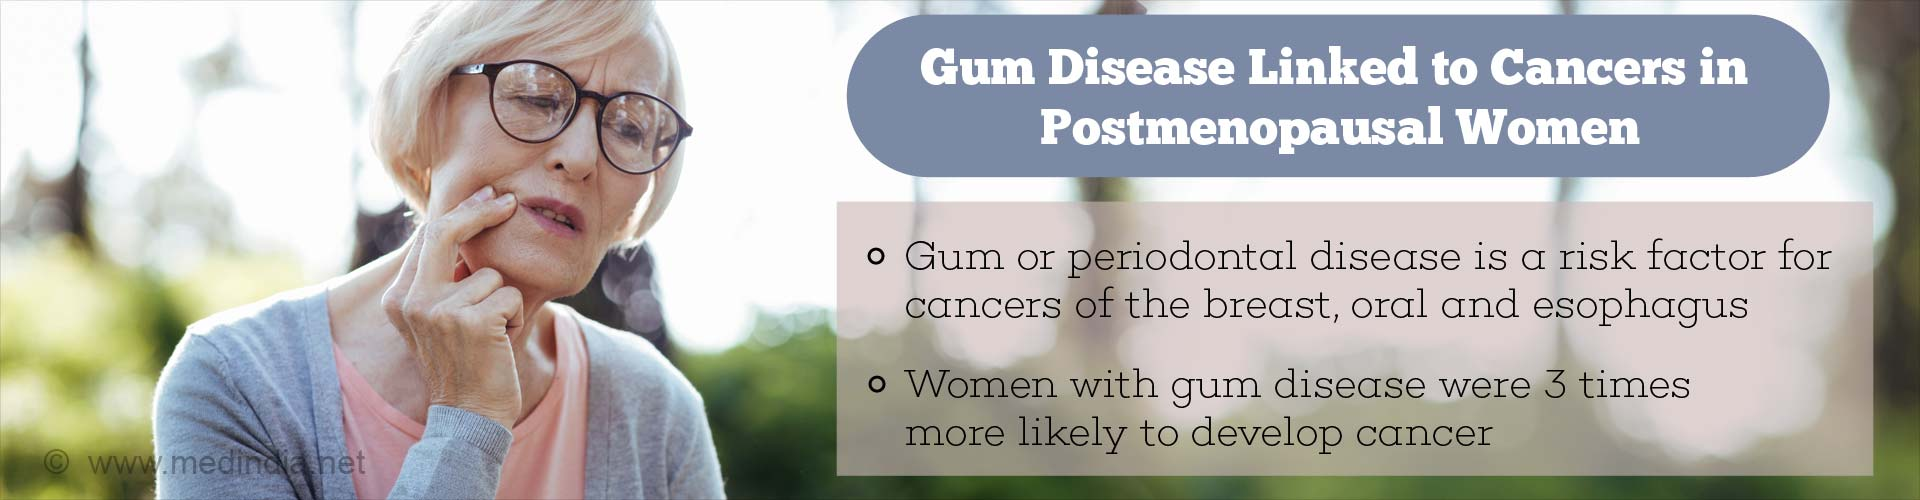 Gum disease linked to cancers in postmenopausal women - Gum or peridontal disease is a risk factor for cancers of breast, oral and esophagus - Women with gum disease were 3 times more likely to develop cancer